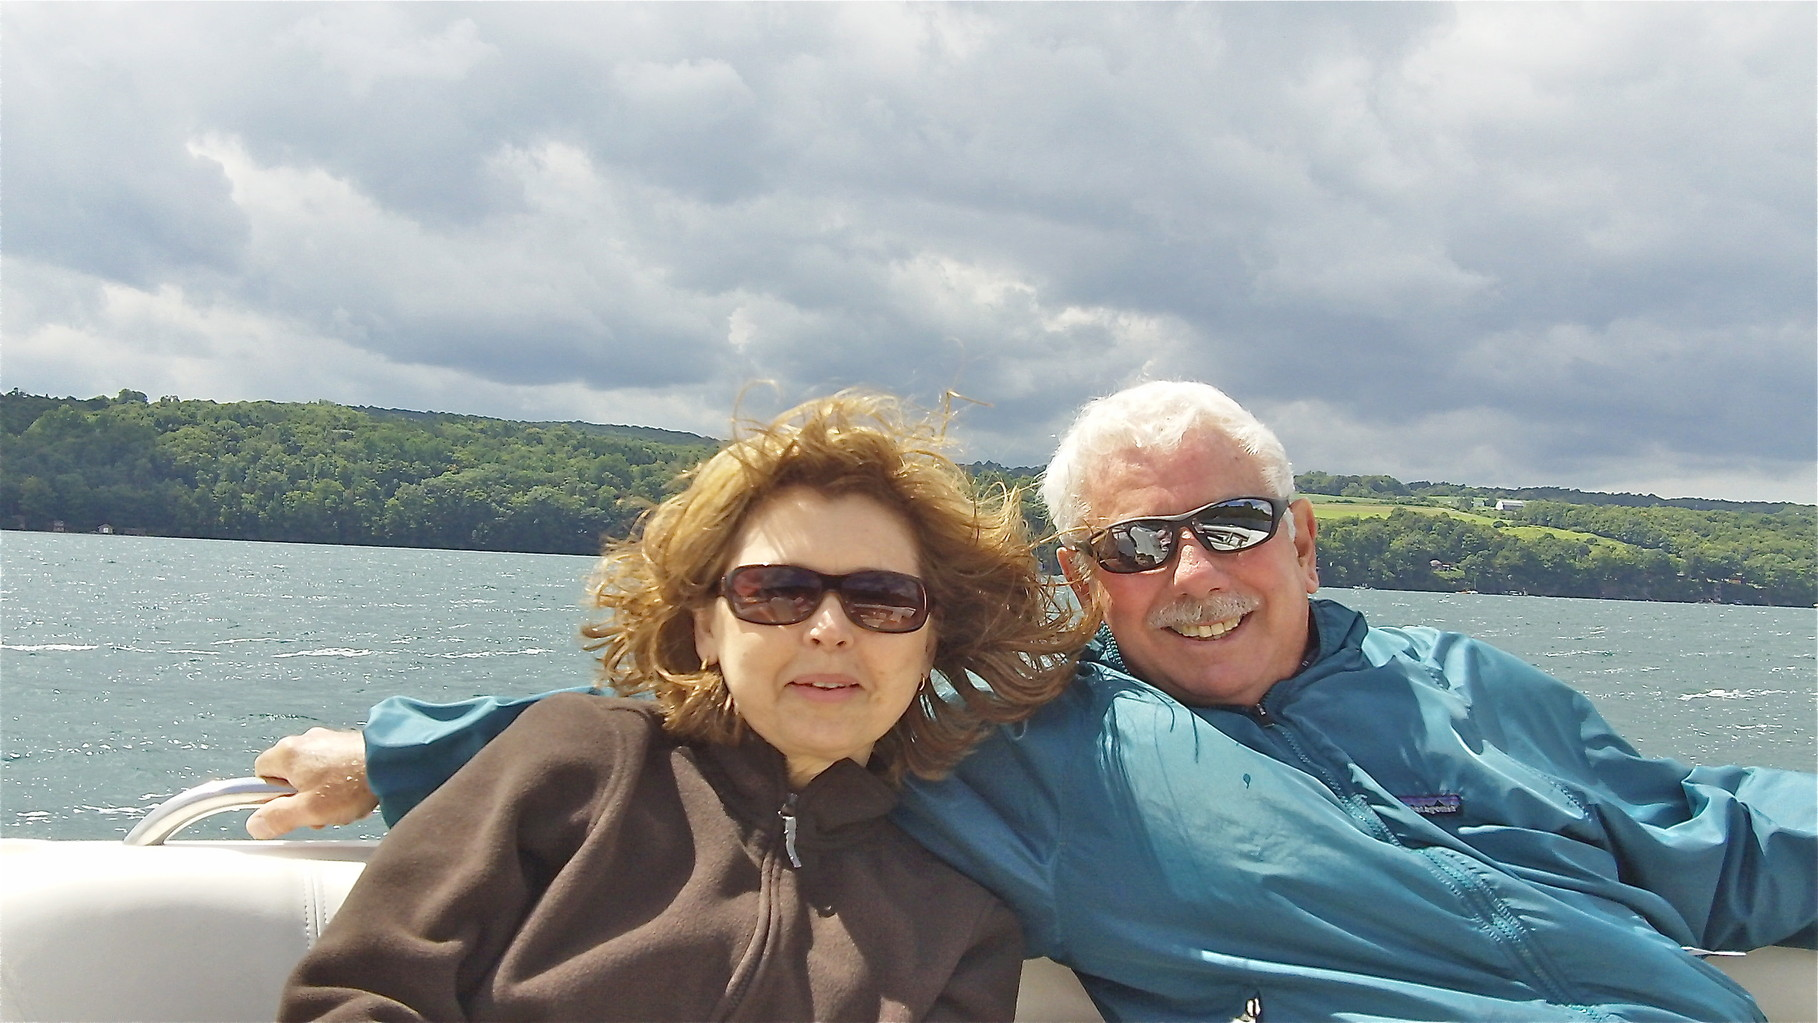 PICTURES FROM Skaneateles, 2014  Barbara & Don, Skaneateles Lake, August 14, 2014